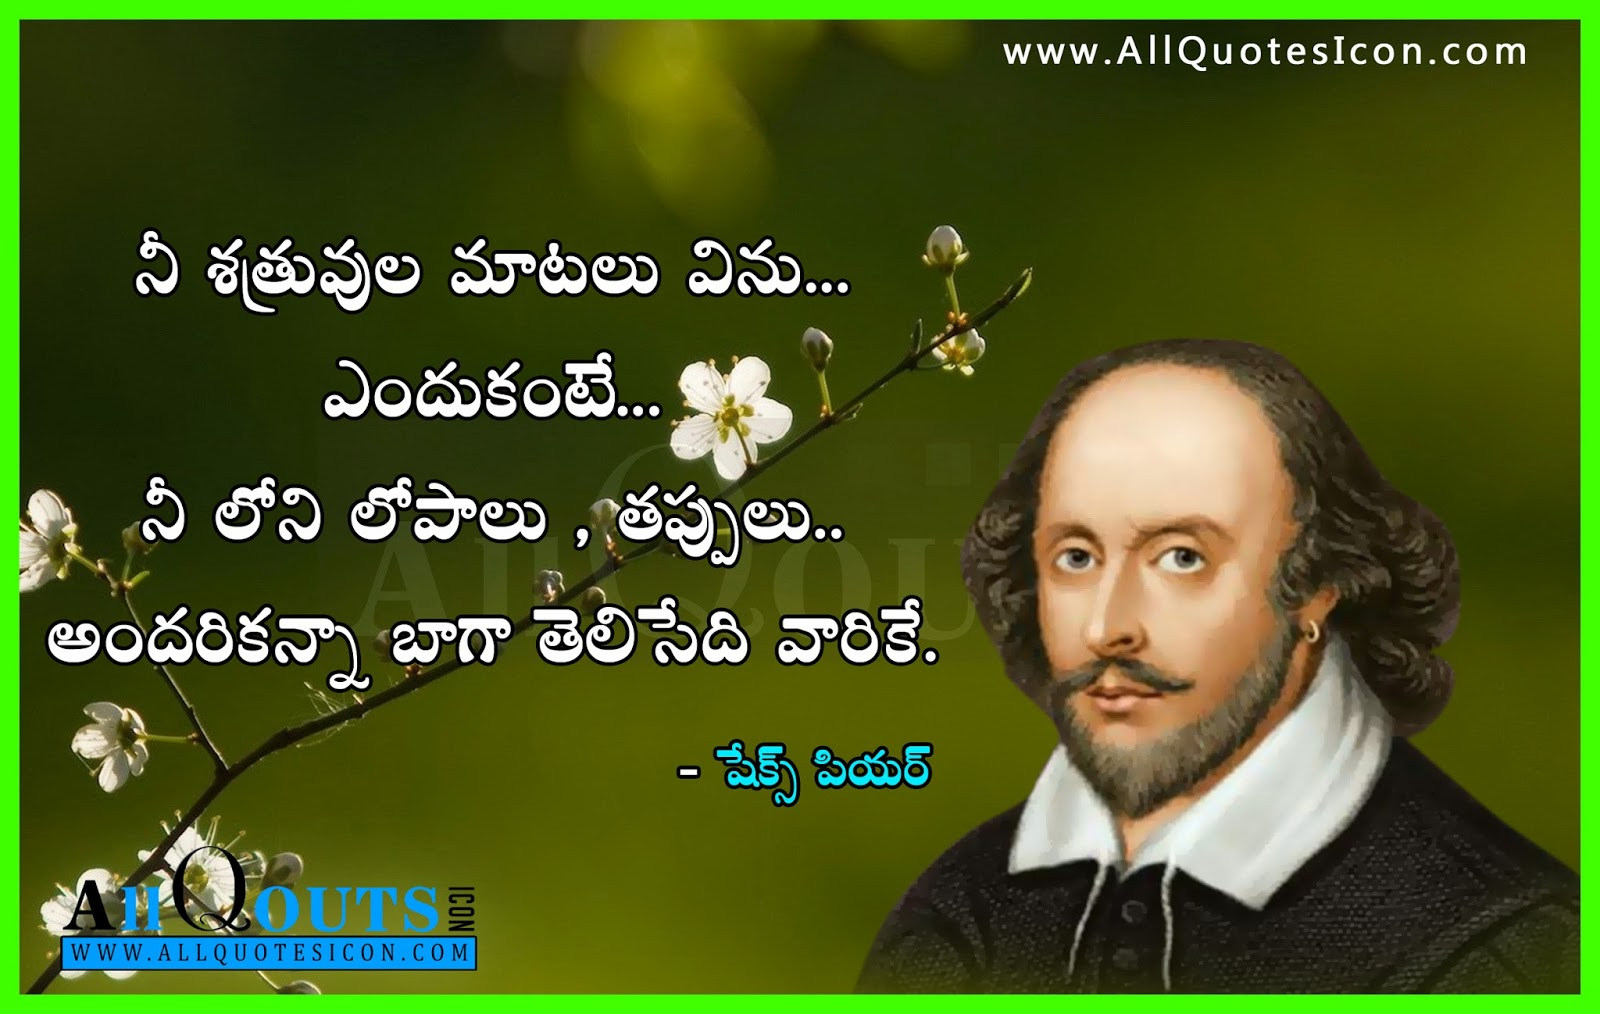 Inspiring Telugu Quotes And Shakespeare Thoughts Allquotesicon